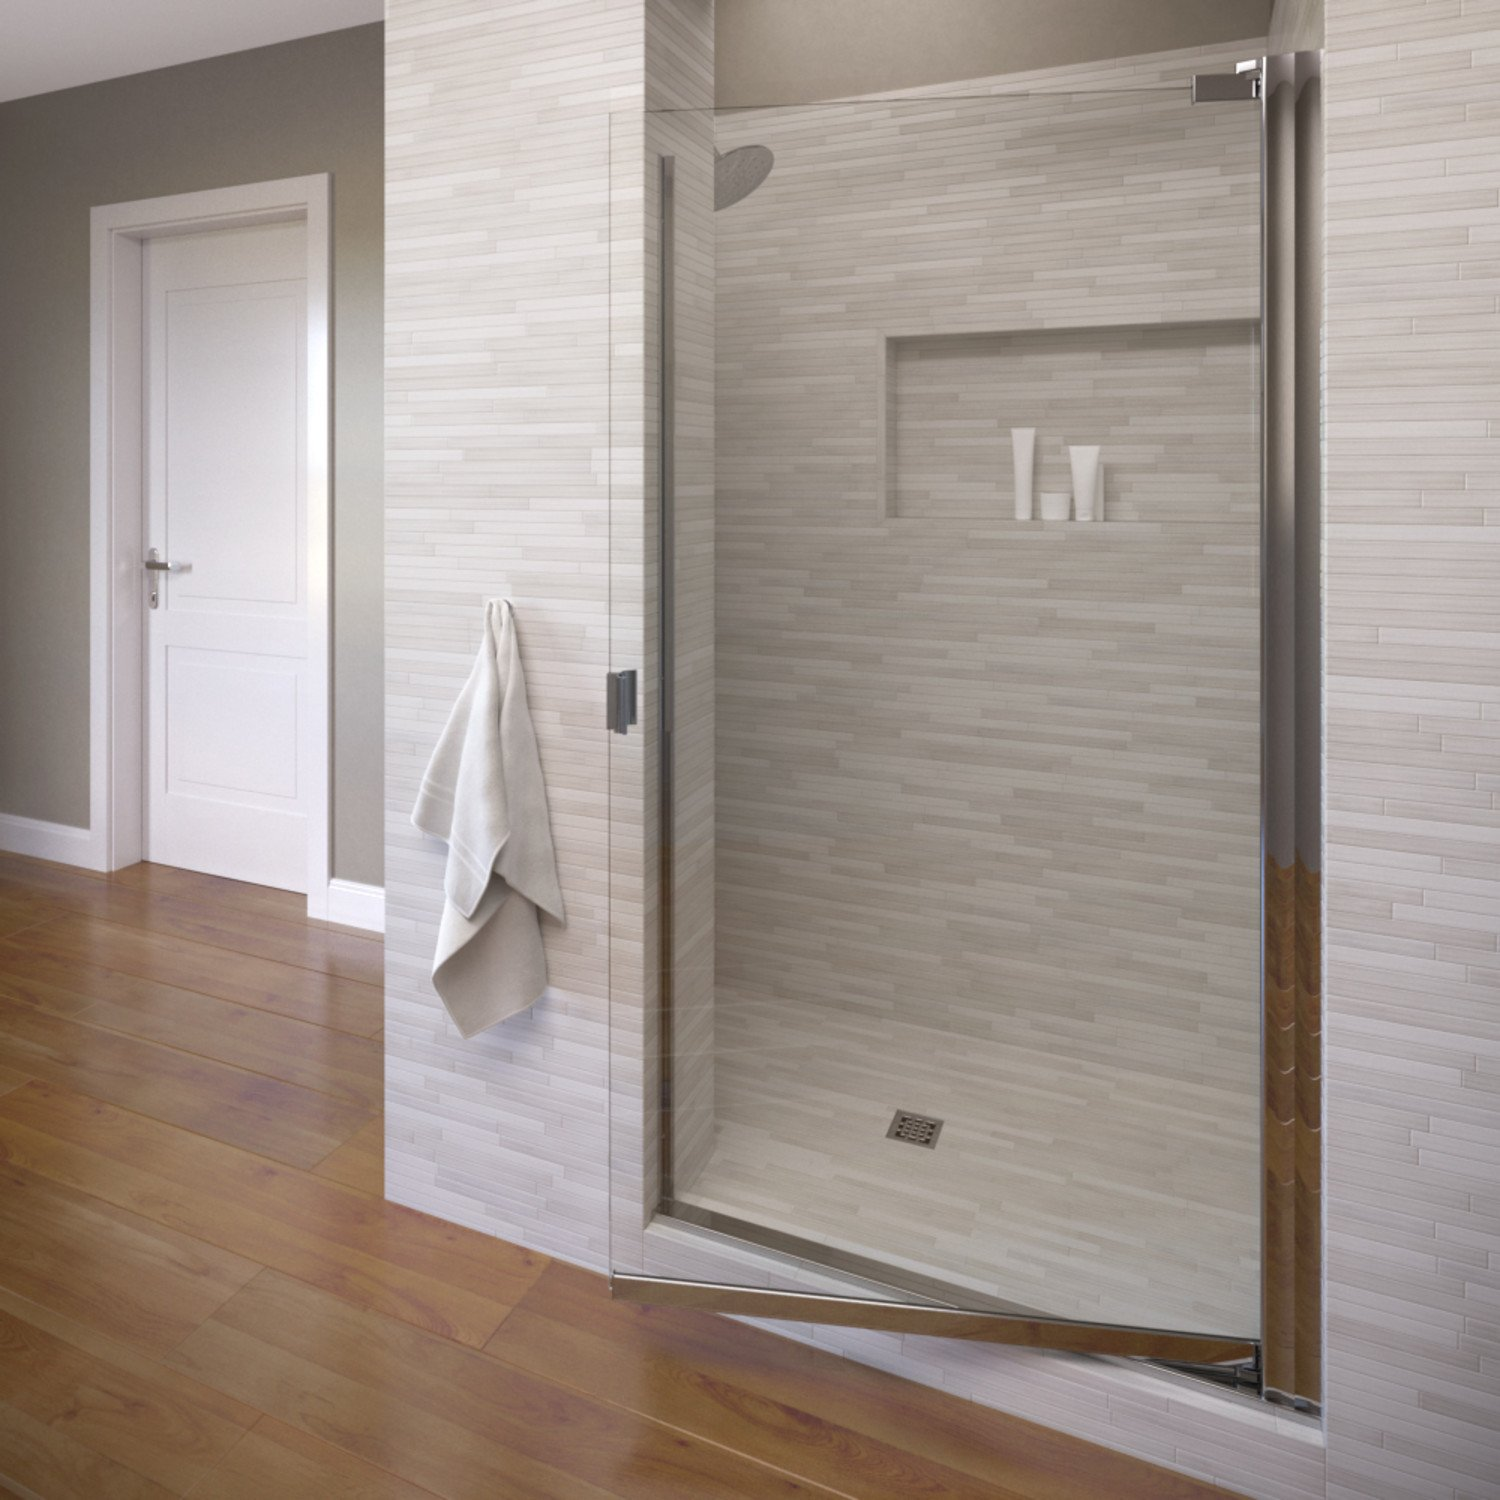 Basco Classic 28.625 to 30.125 in. width, Semi-Frameless Pivot Shower Door, Clear Glass, Silver Finish by Basco Shower Door (Image #1)